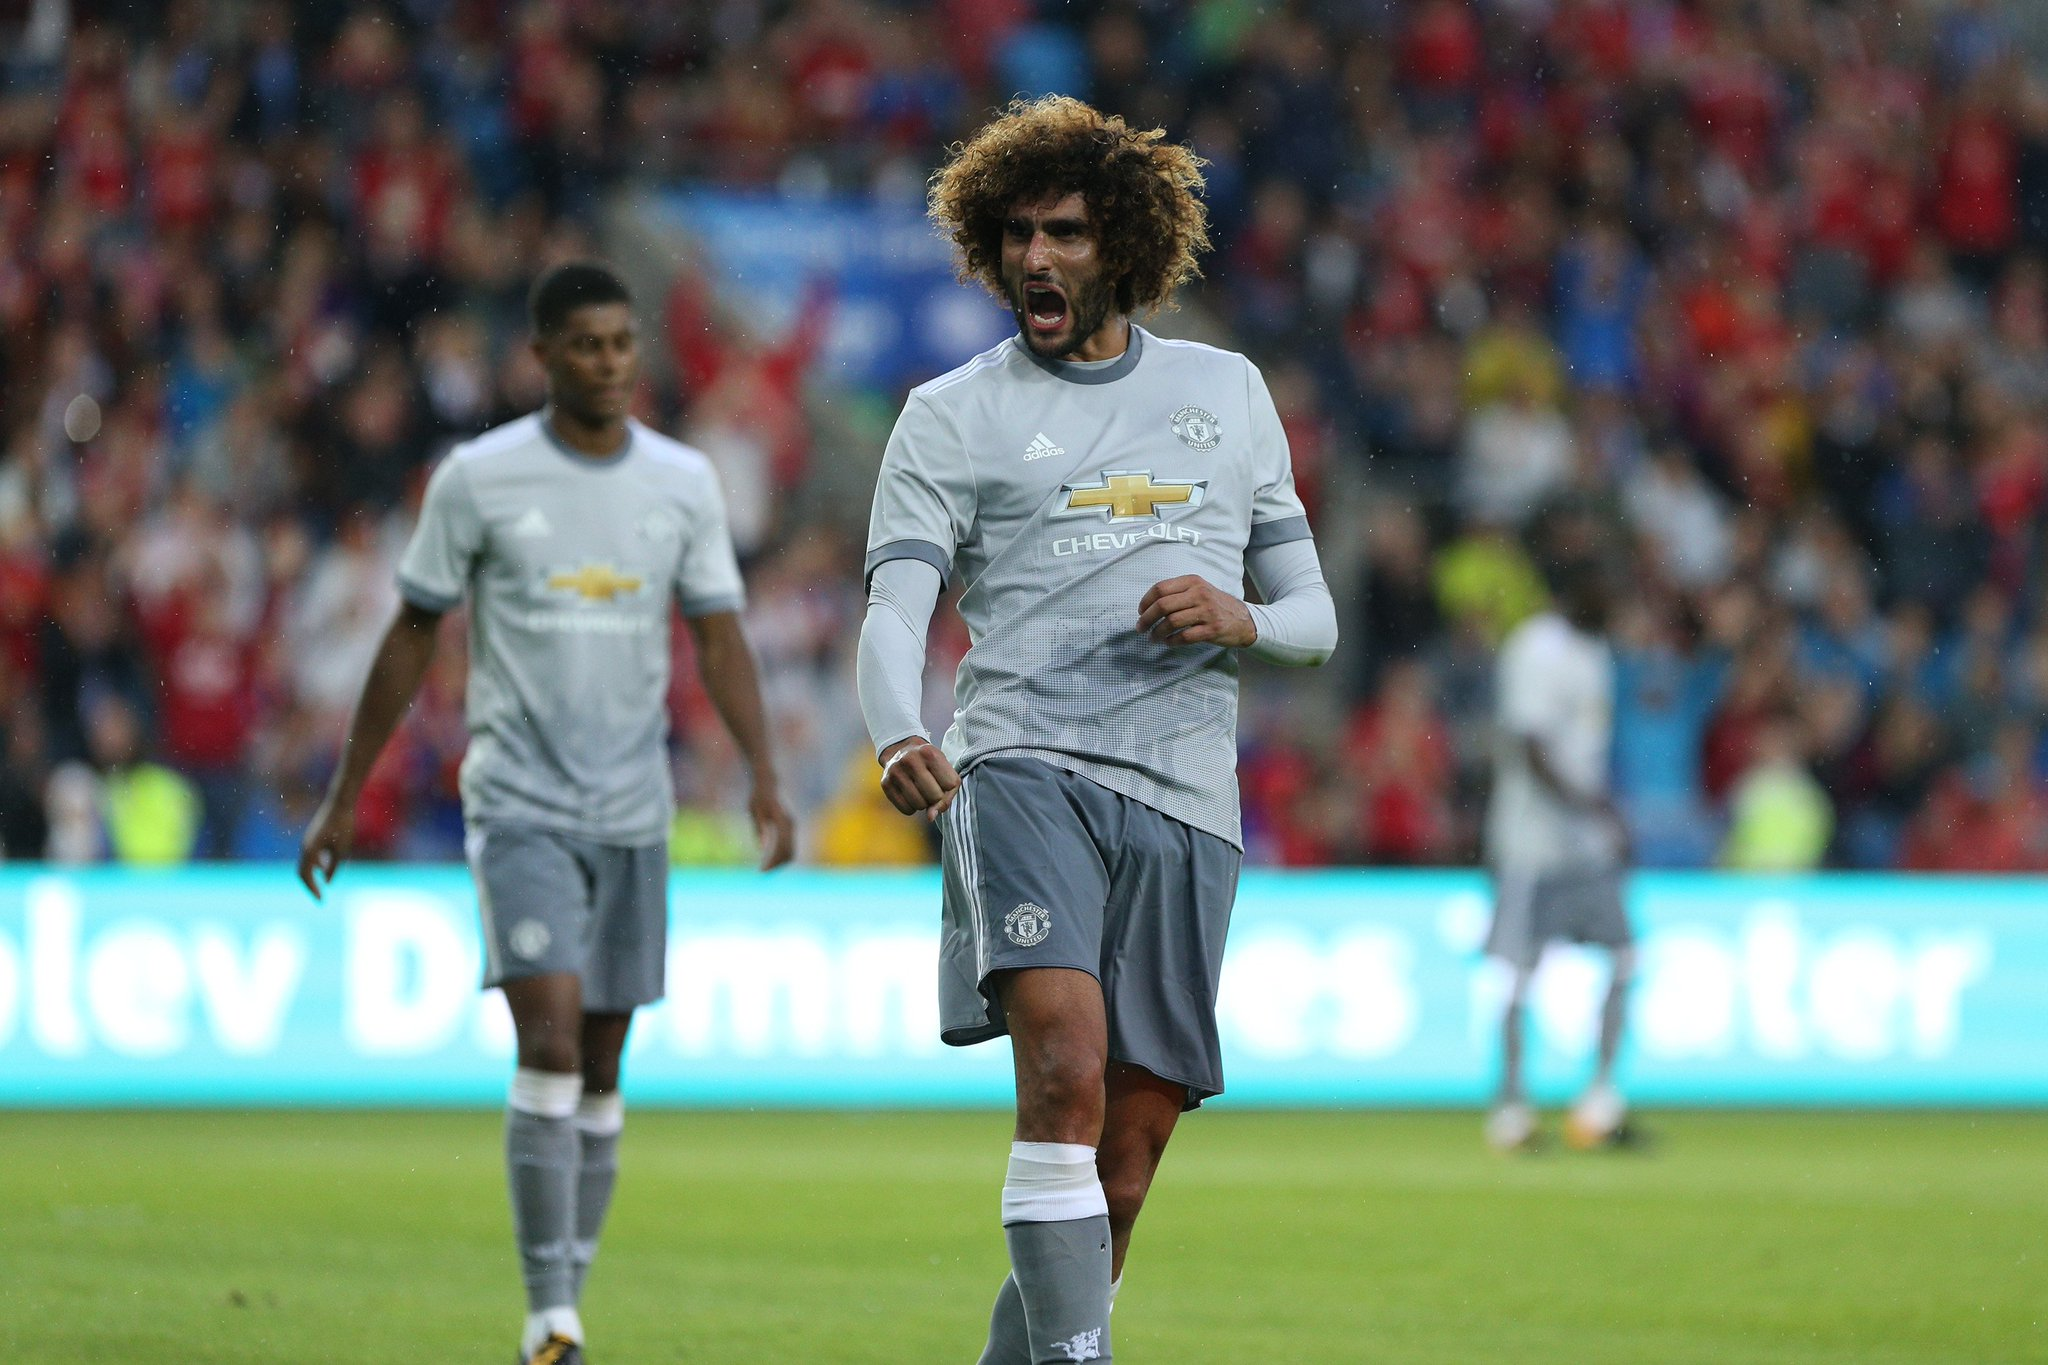 Thumbnail for Not every Man United fan thinks Fellaini should be sold